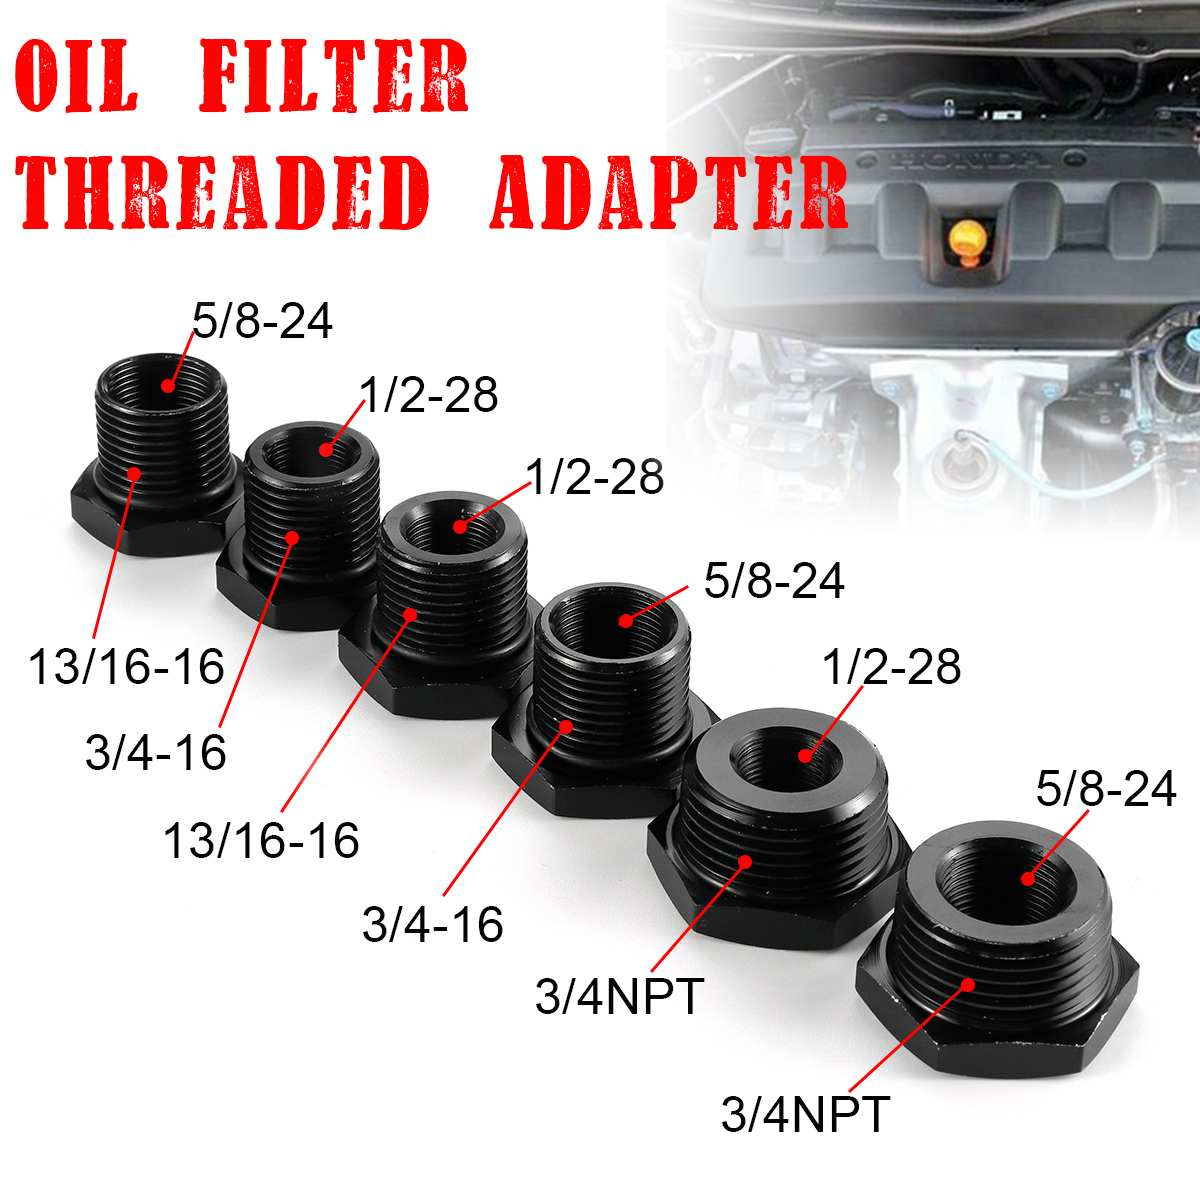 1/2pcs Steel Aluminum Car Oil Filter Adapter 1/2-28 /5/8-24 To 3/4-16 /13/16-16 /3/4 NPT Threaded Automotive For STP S3600